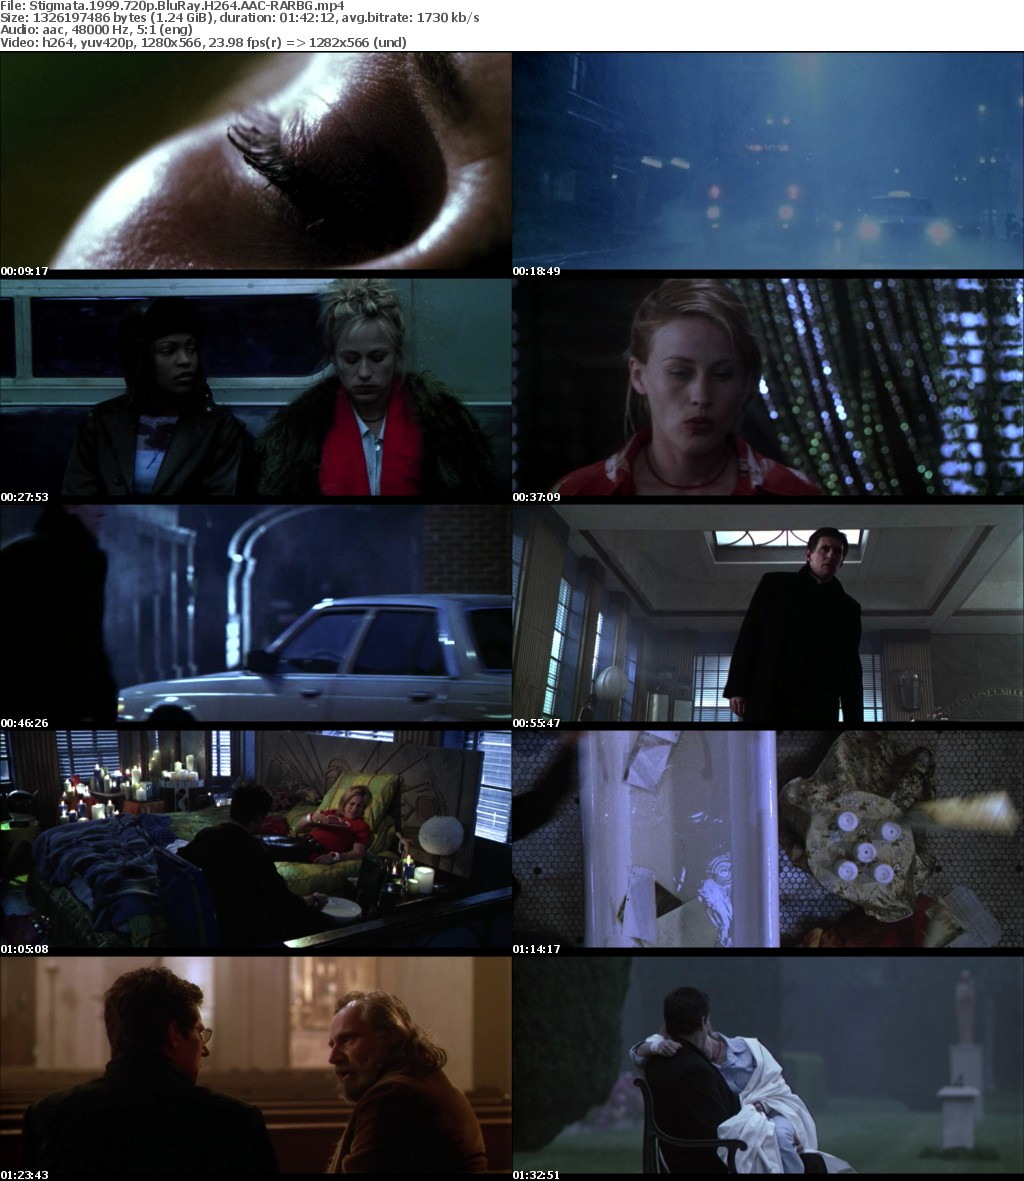 Stigmata 1999 720p BluRay H264 AAC-RARBG